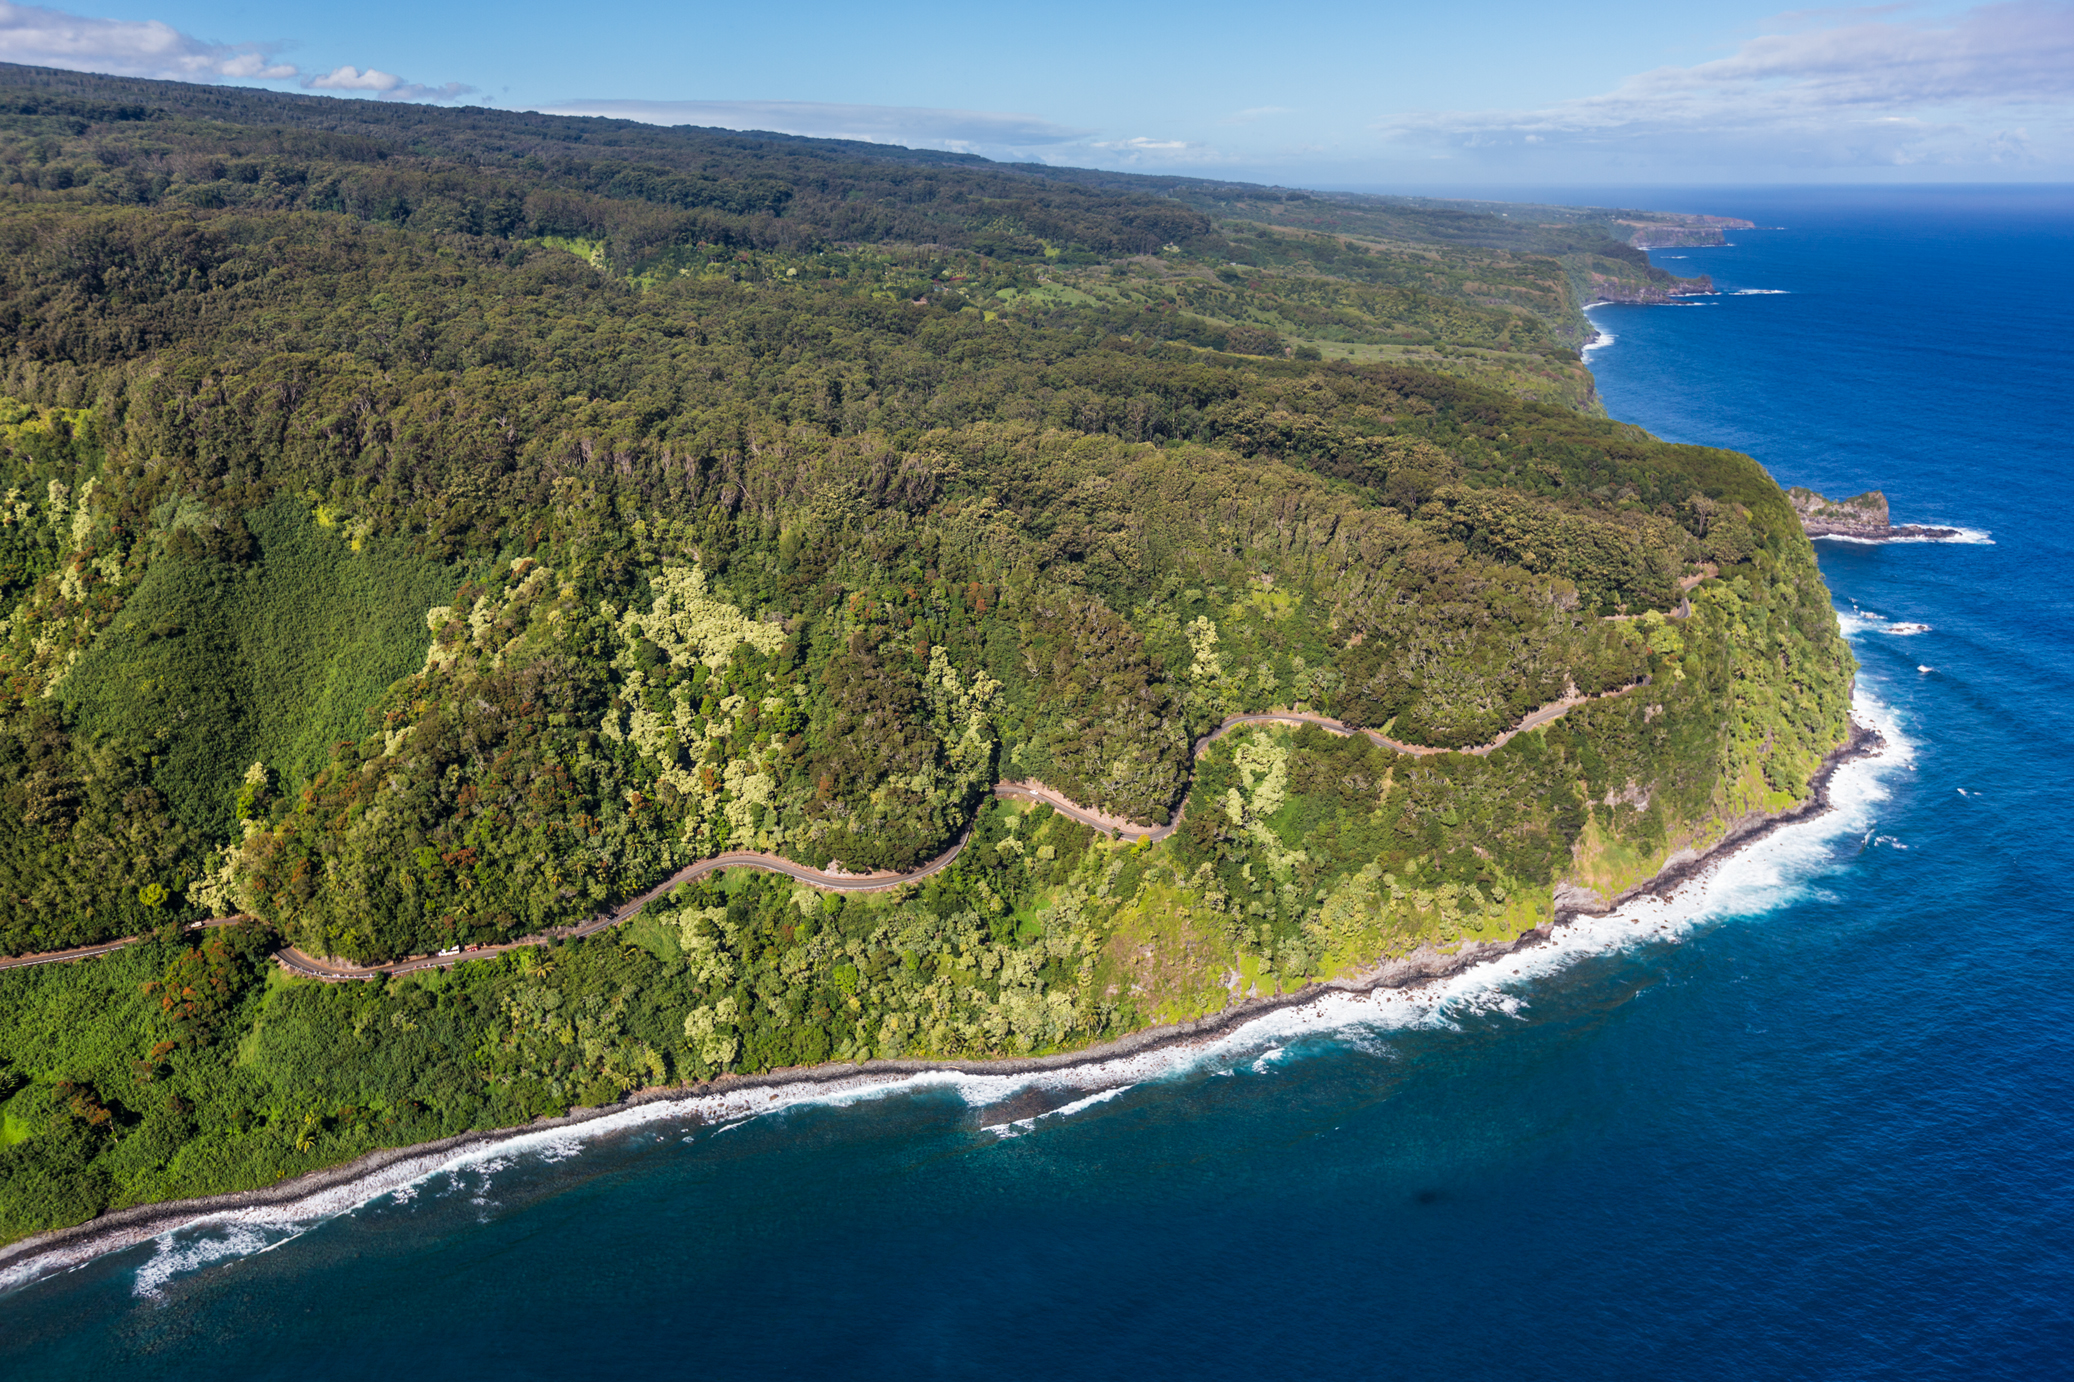 The Hana Highway weaves along the east coast of Maui, as seen in this aerial shot of the island.